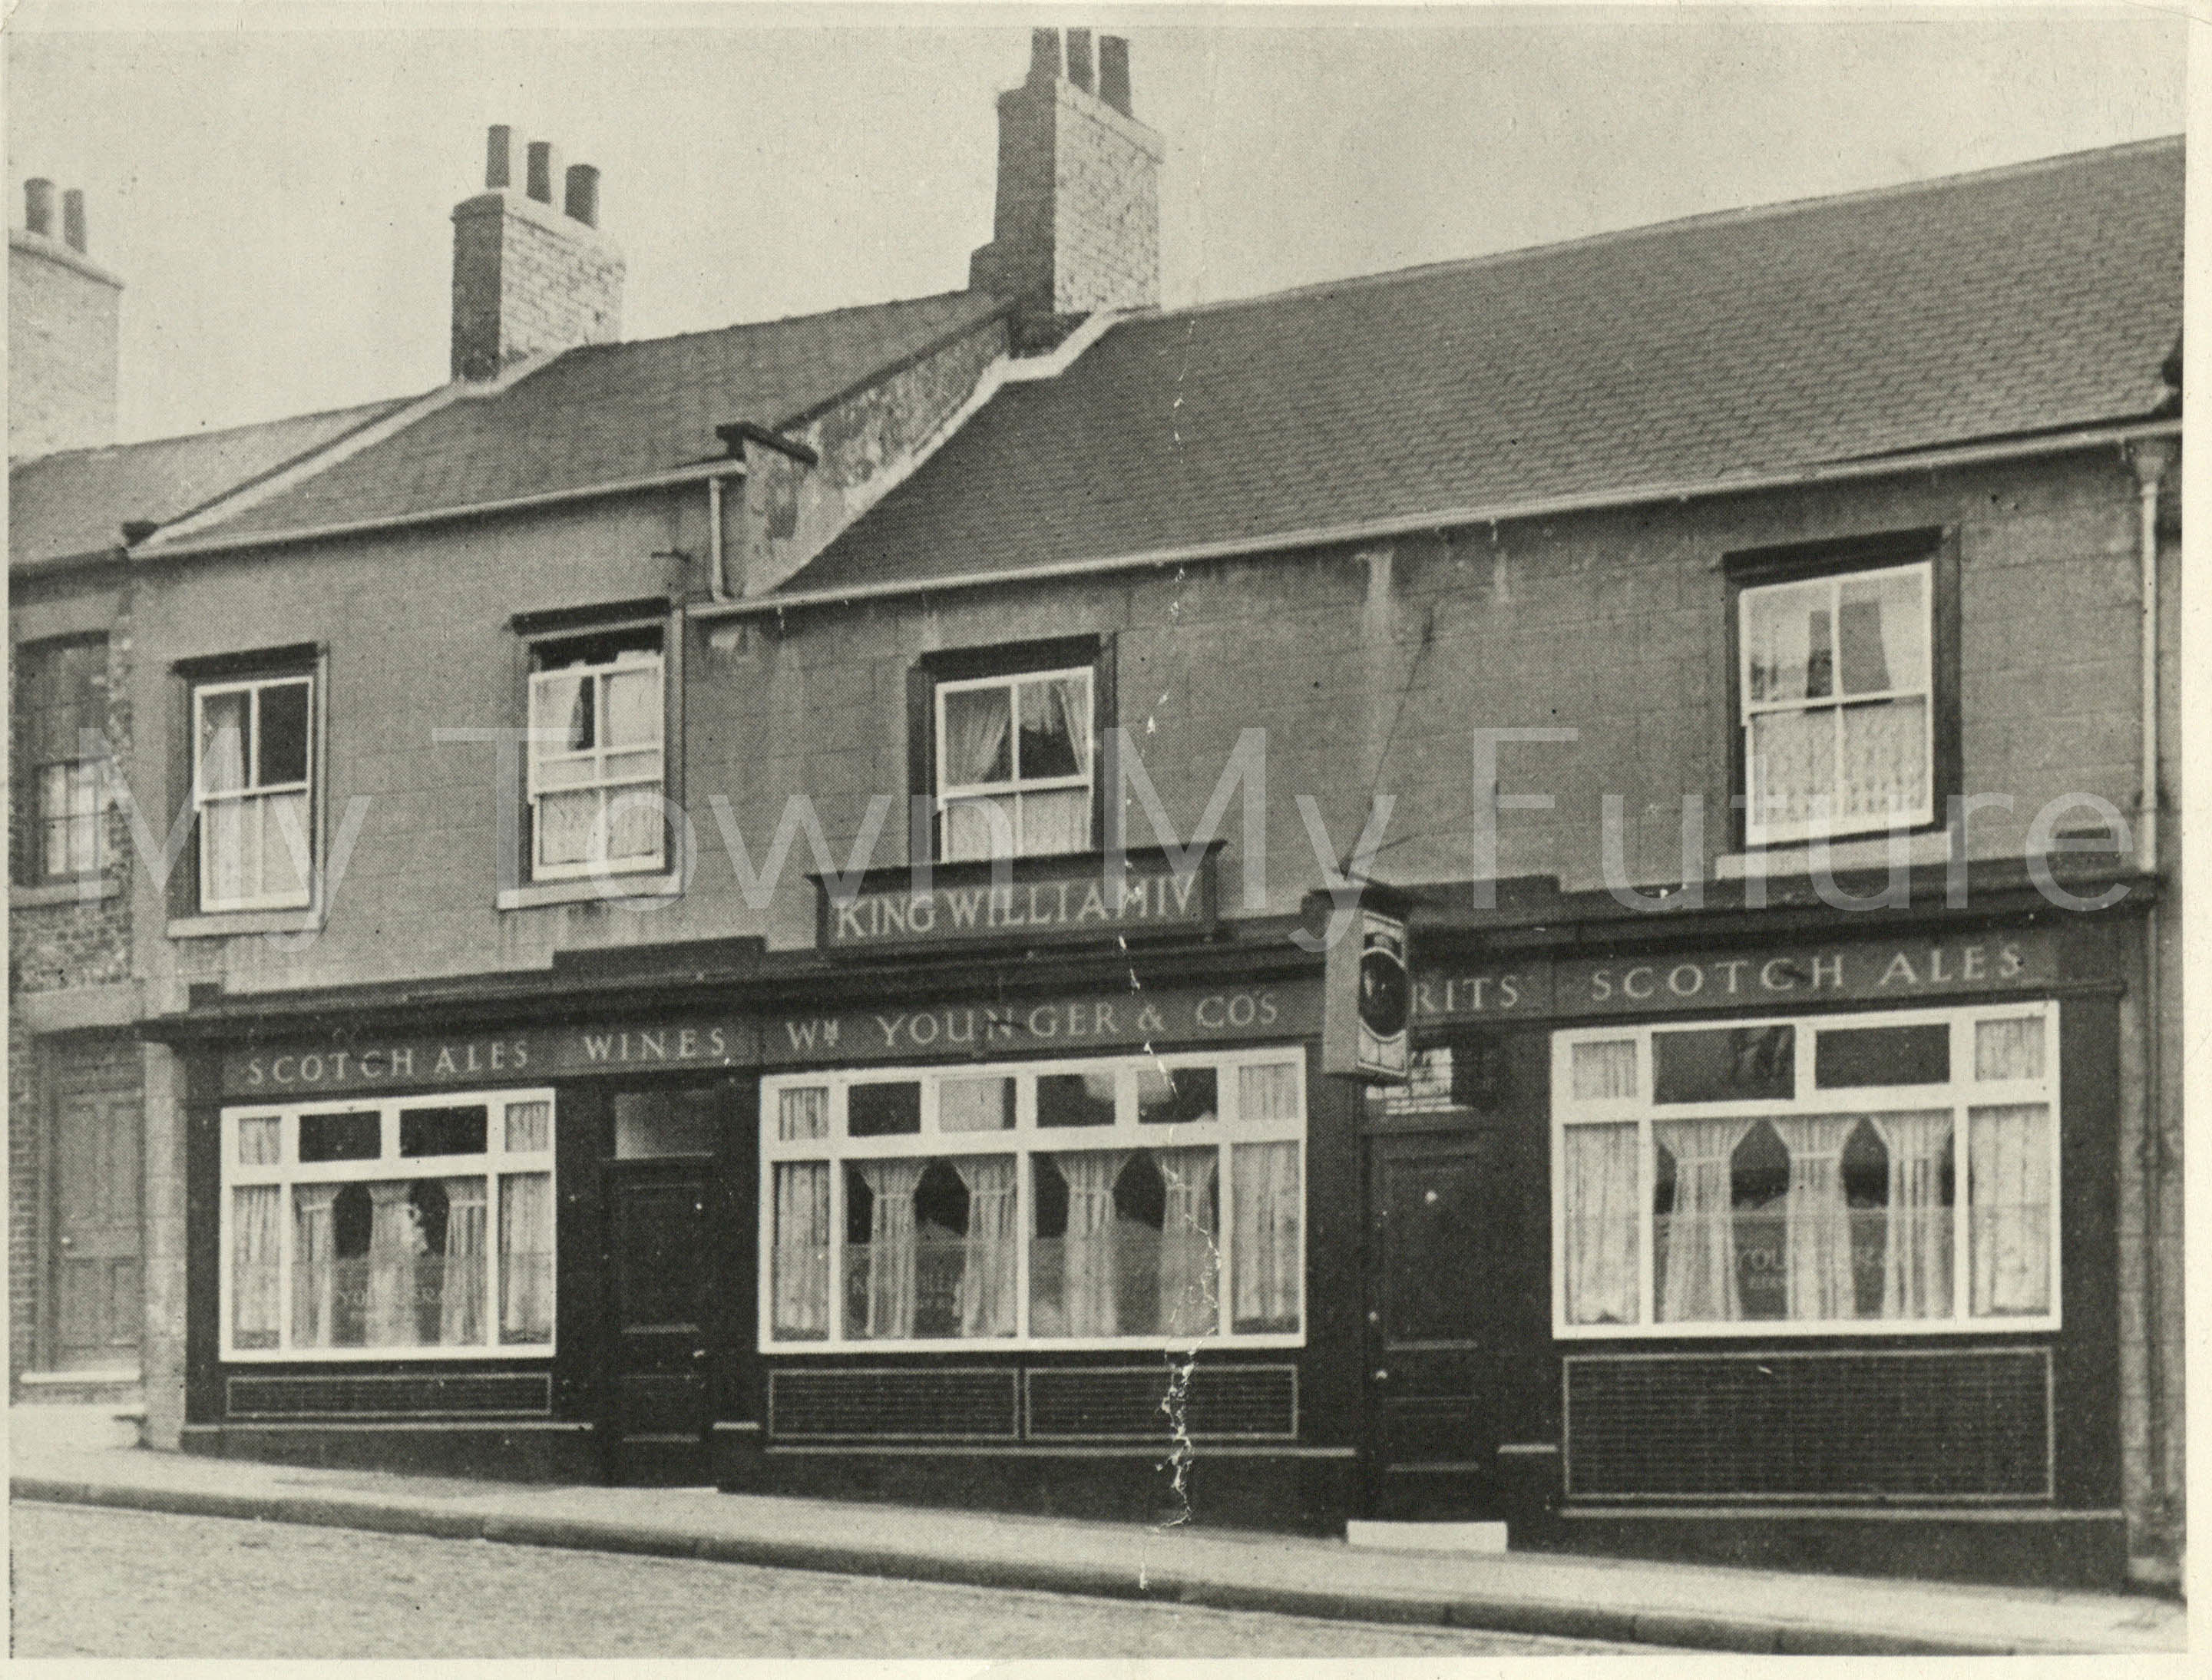 The King William IV Hotel West Street St Hilda's Next Door to Midddlesbrough 1st House No. 26 built in 1830